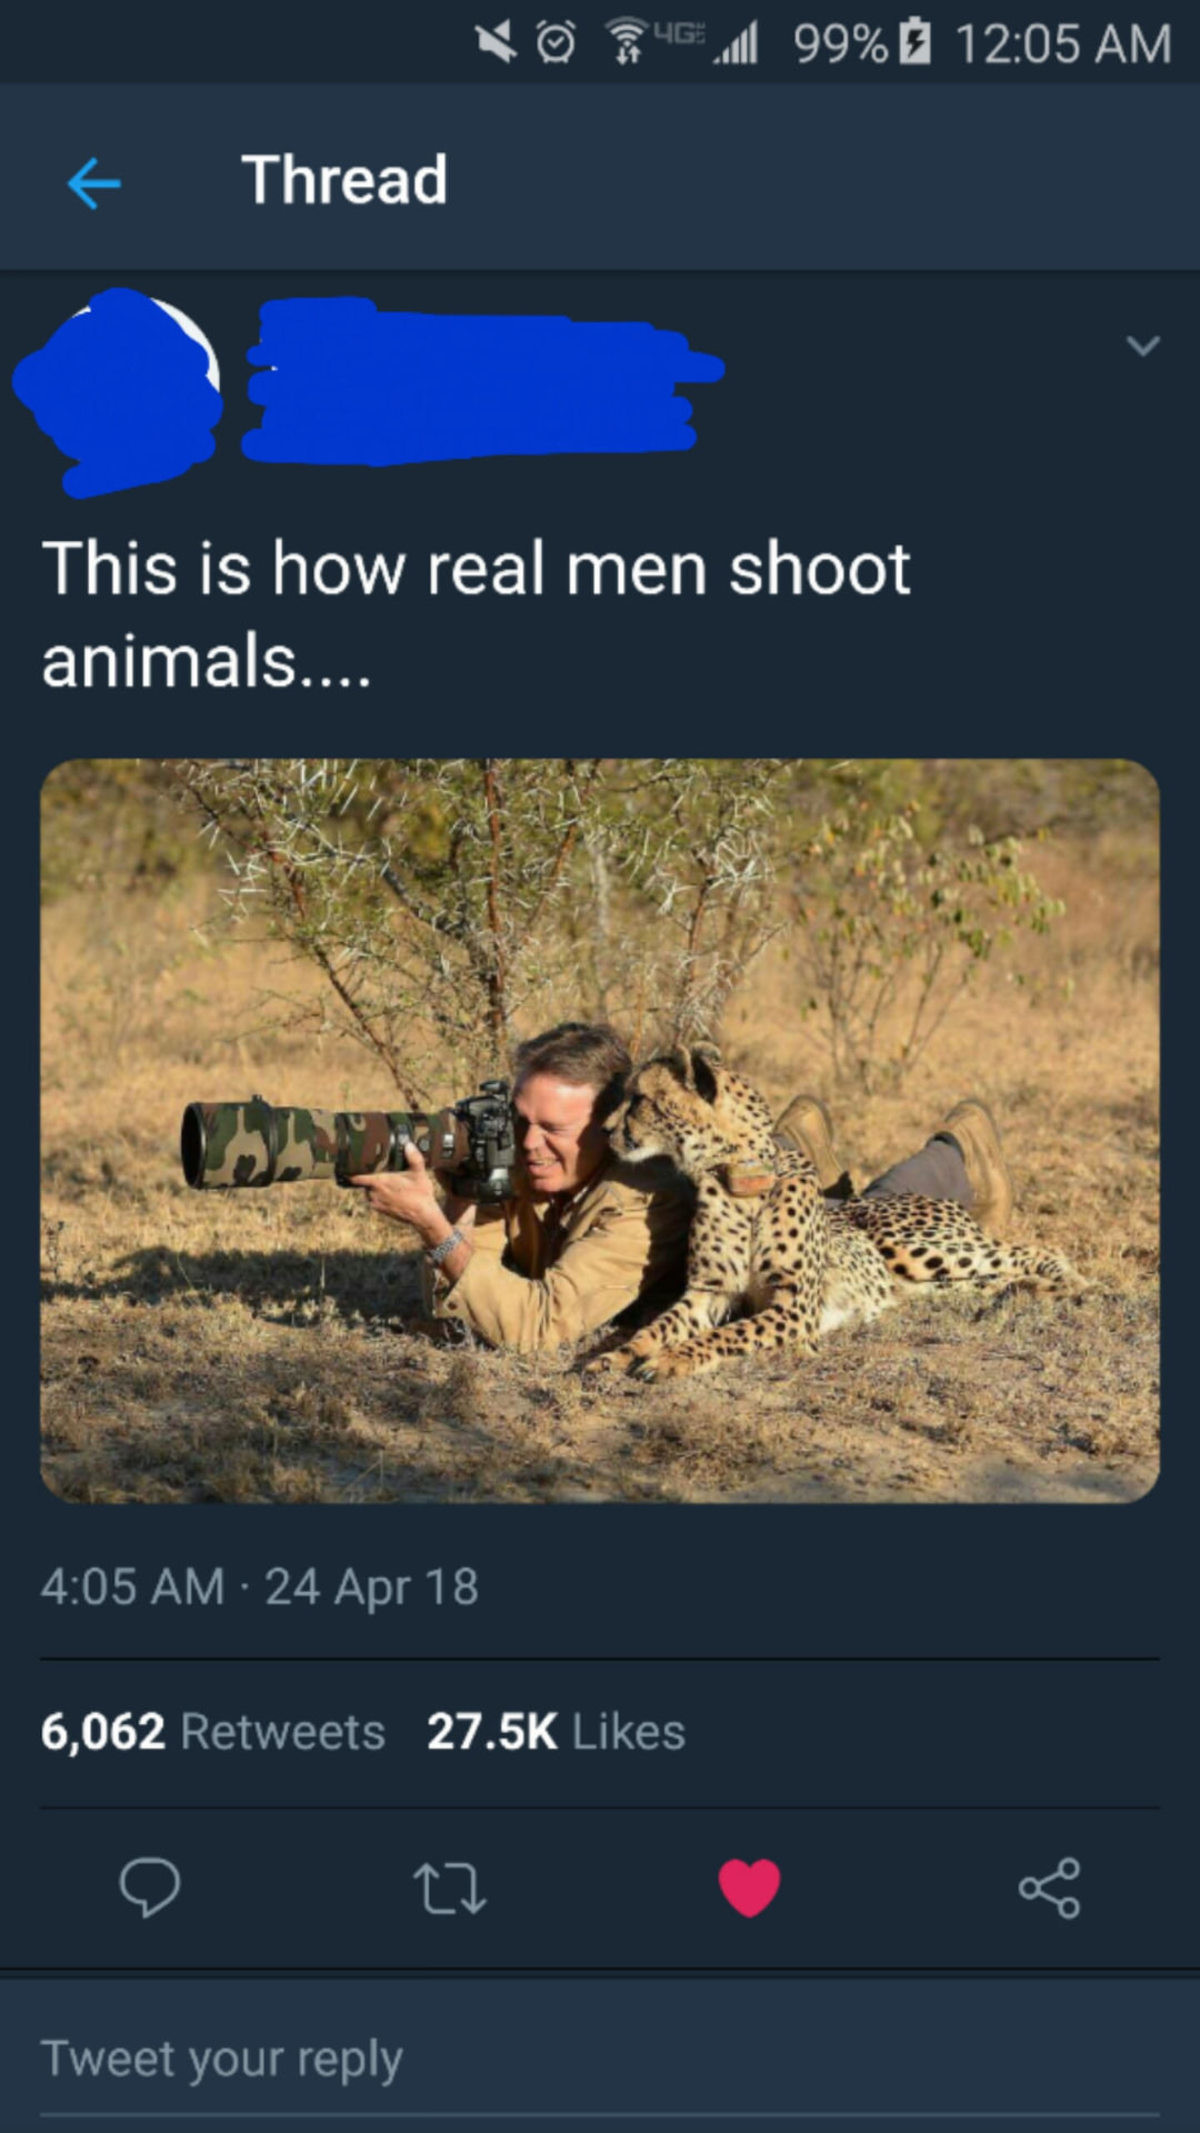 Feeling gloom? It's friday my dude. join list: SoWholesome (188 subs)Mention History. Attic I'; All 12: 05 AM 4- Thread This is how real men shoot animals.... 6